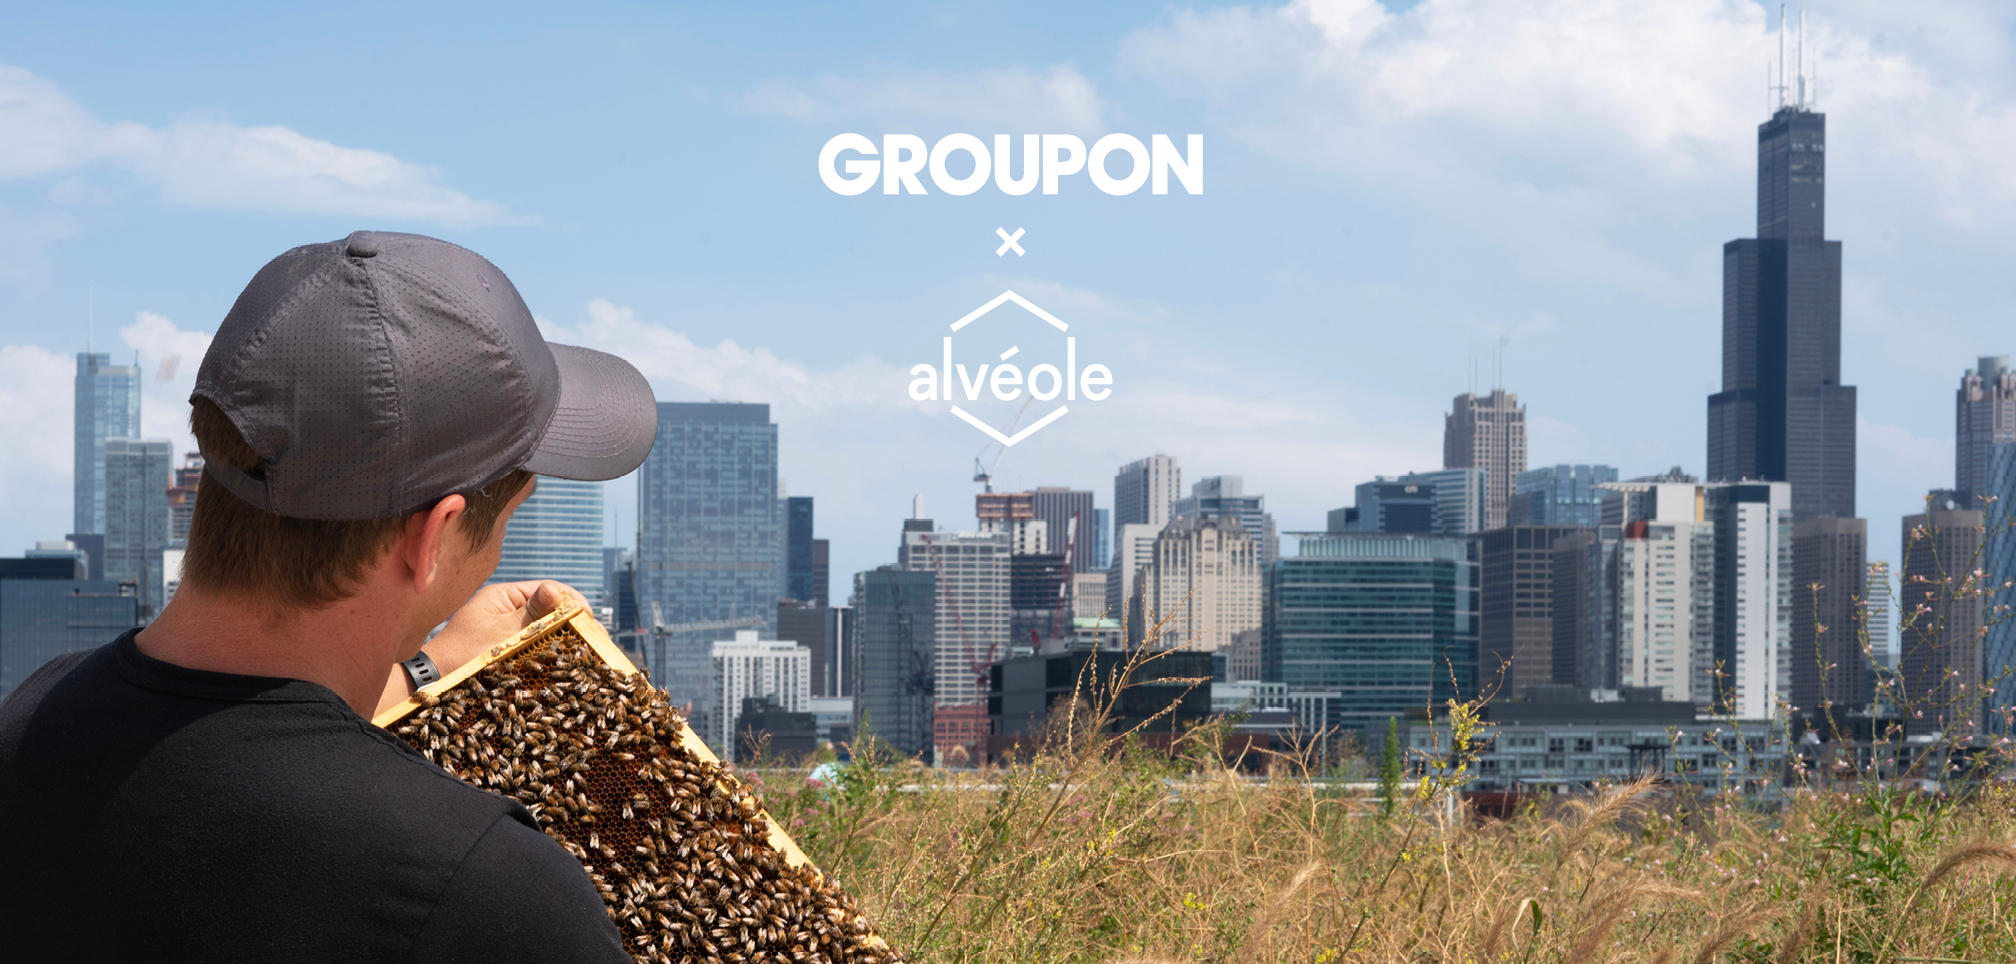 Chicago-city-skyline-with-urban-beekeeper-holding-a-honeycomb-frame-with-Groupon-and-Alvéole-logos